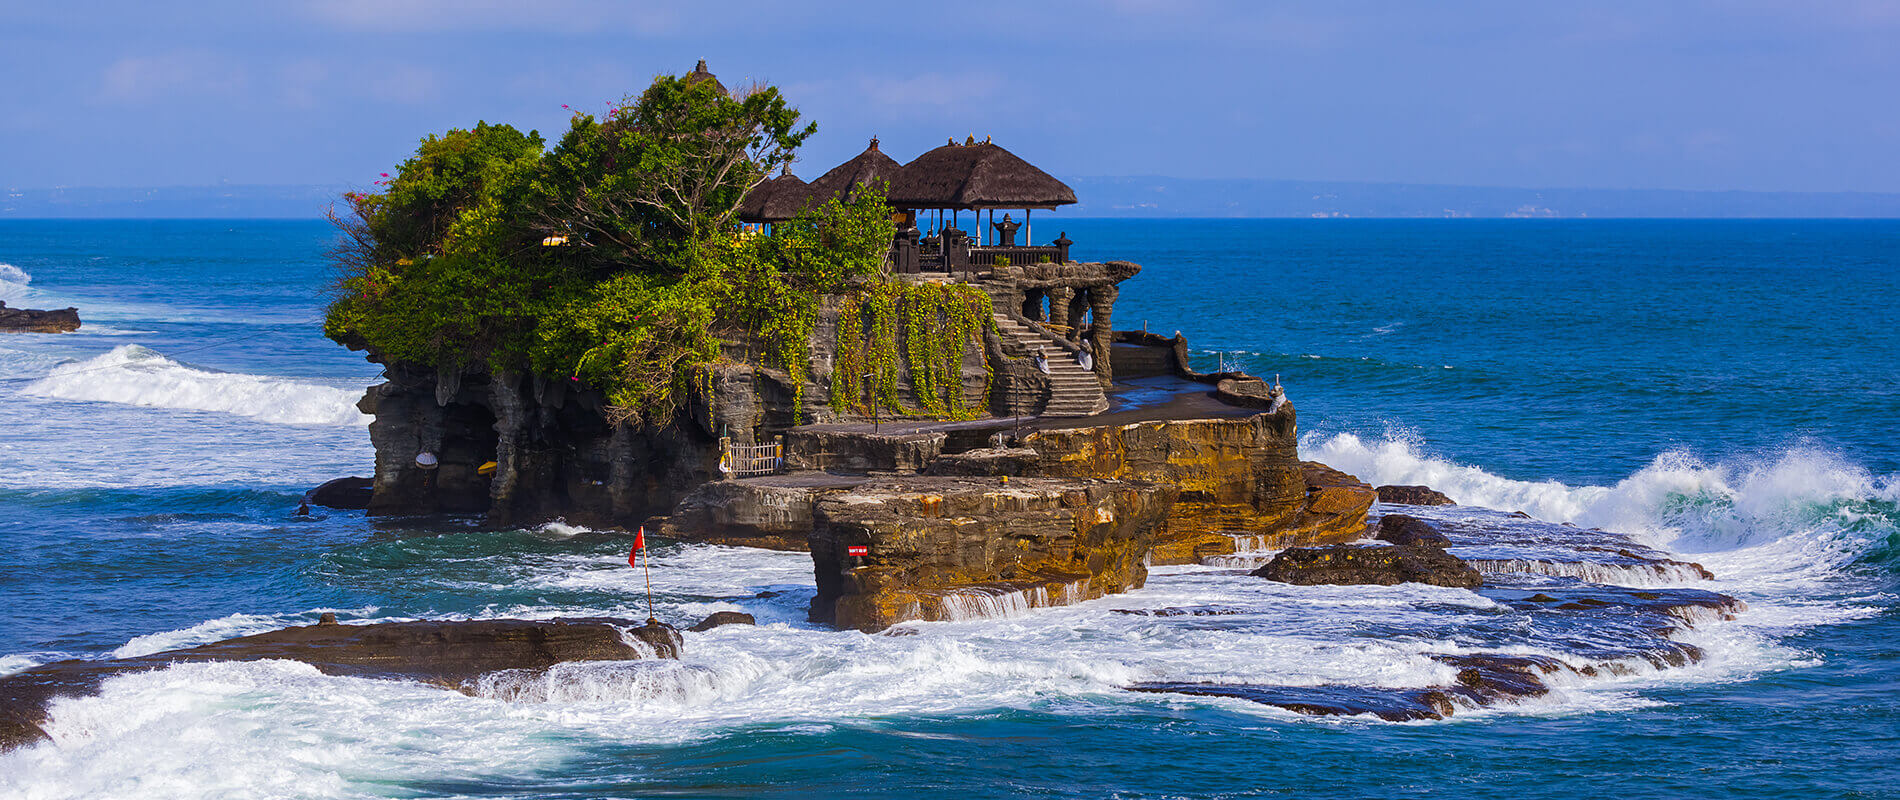 Pura Tanah Lot, a Temple Dedicated to the Divinity of the Sea